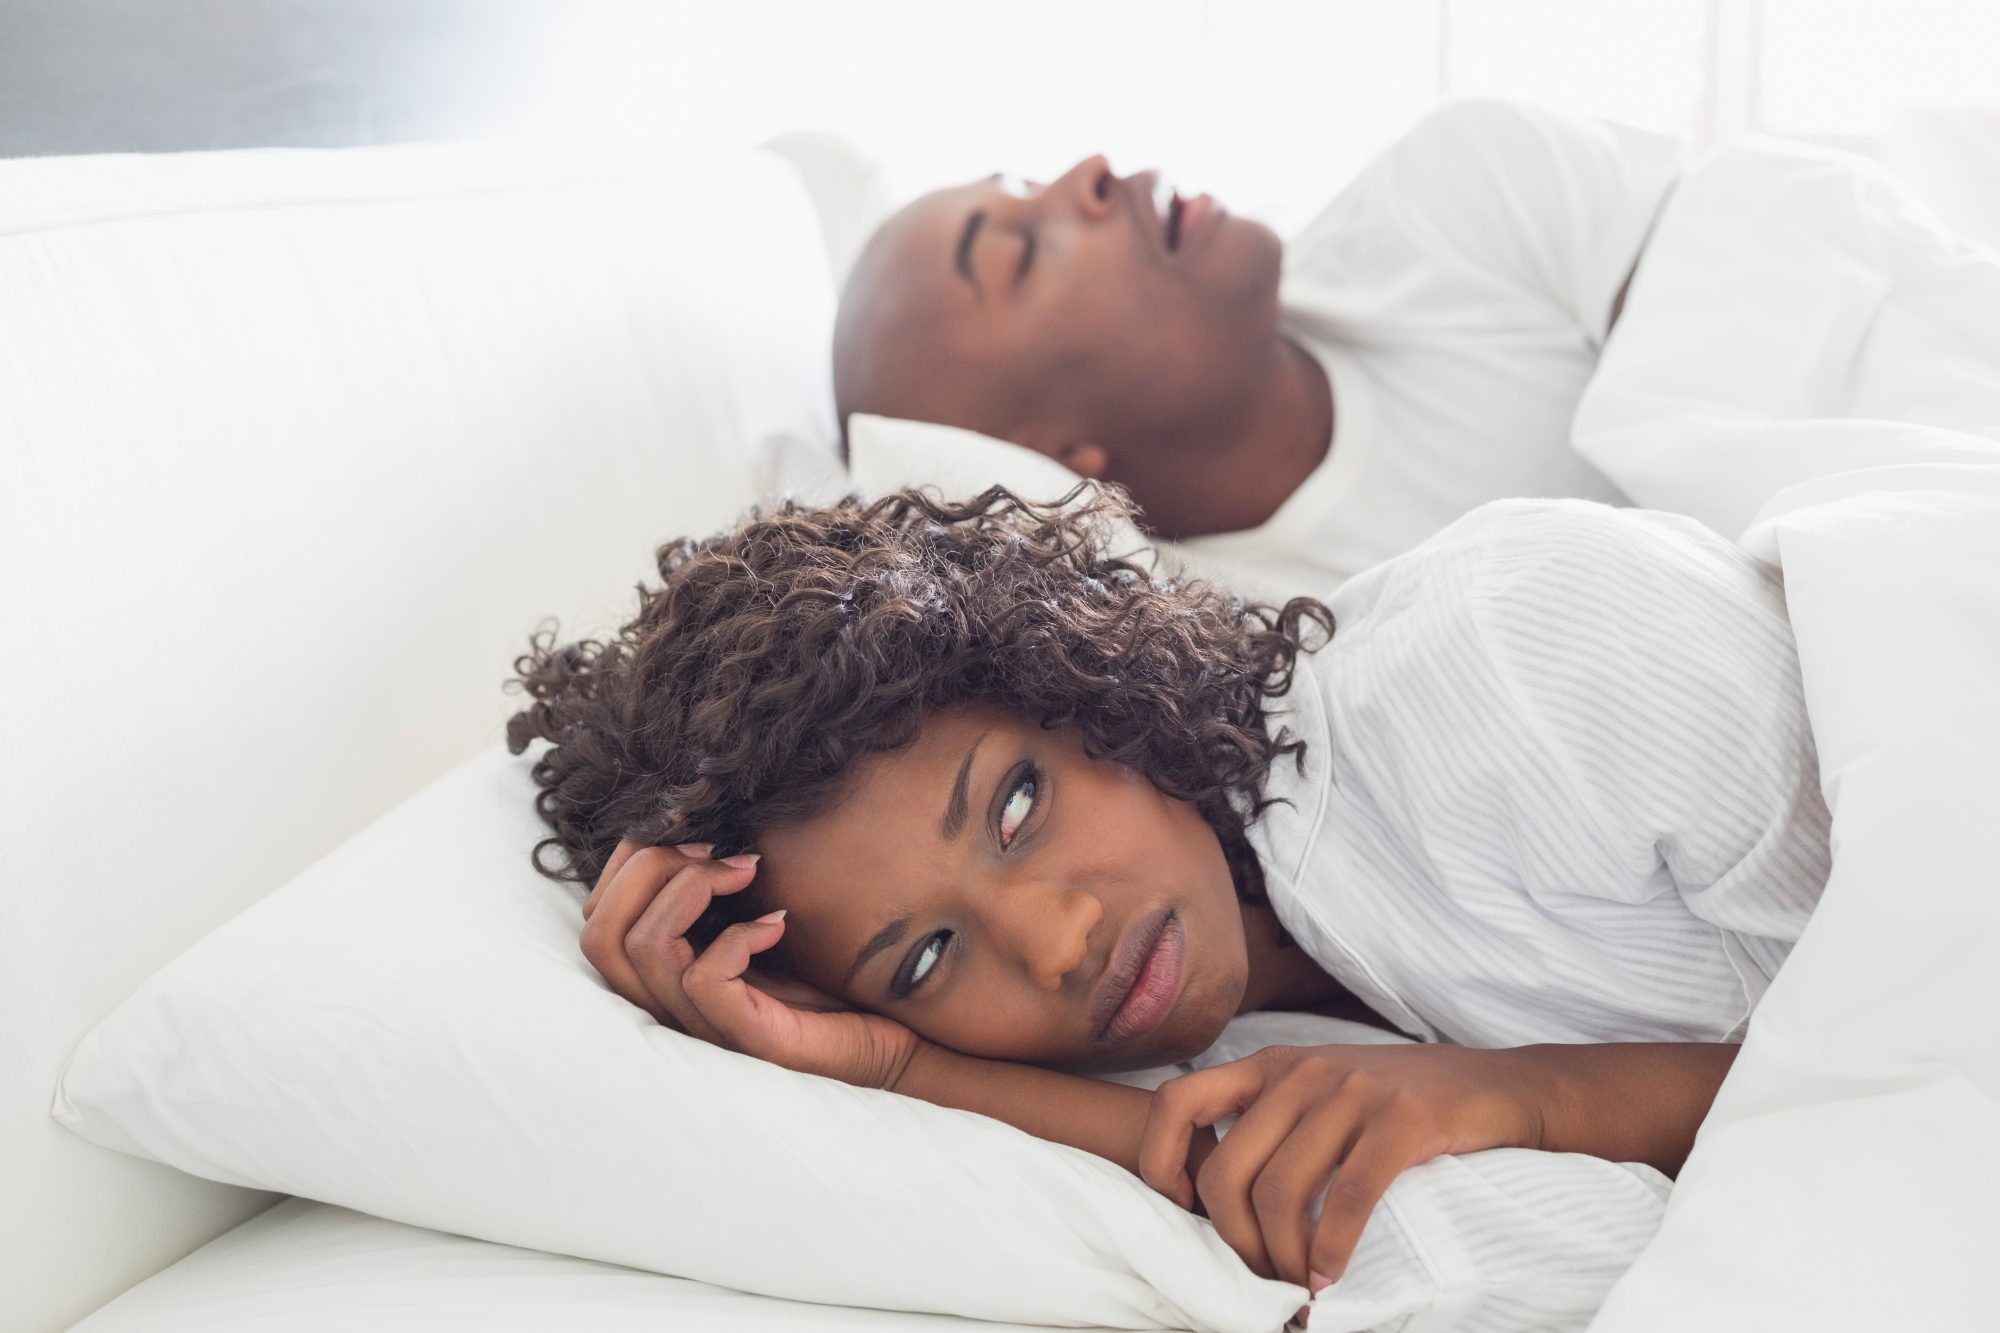 Woman Annoyed By Man Snoring